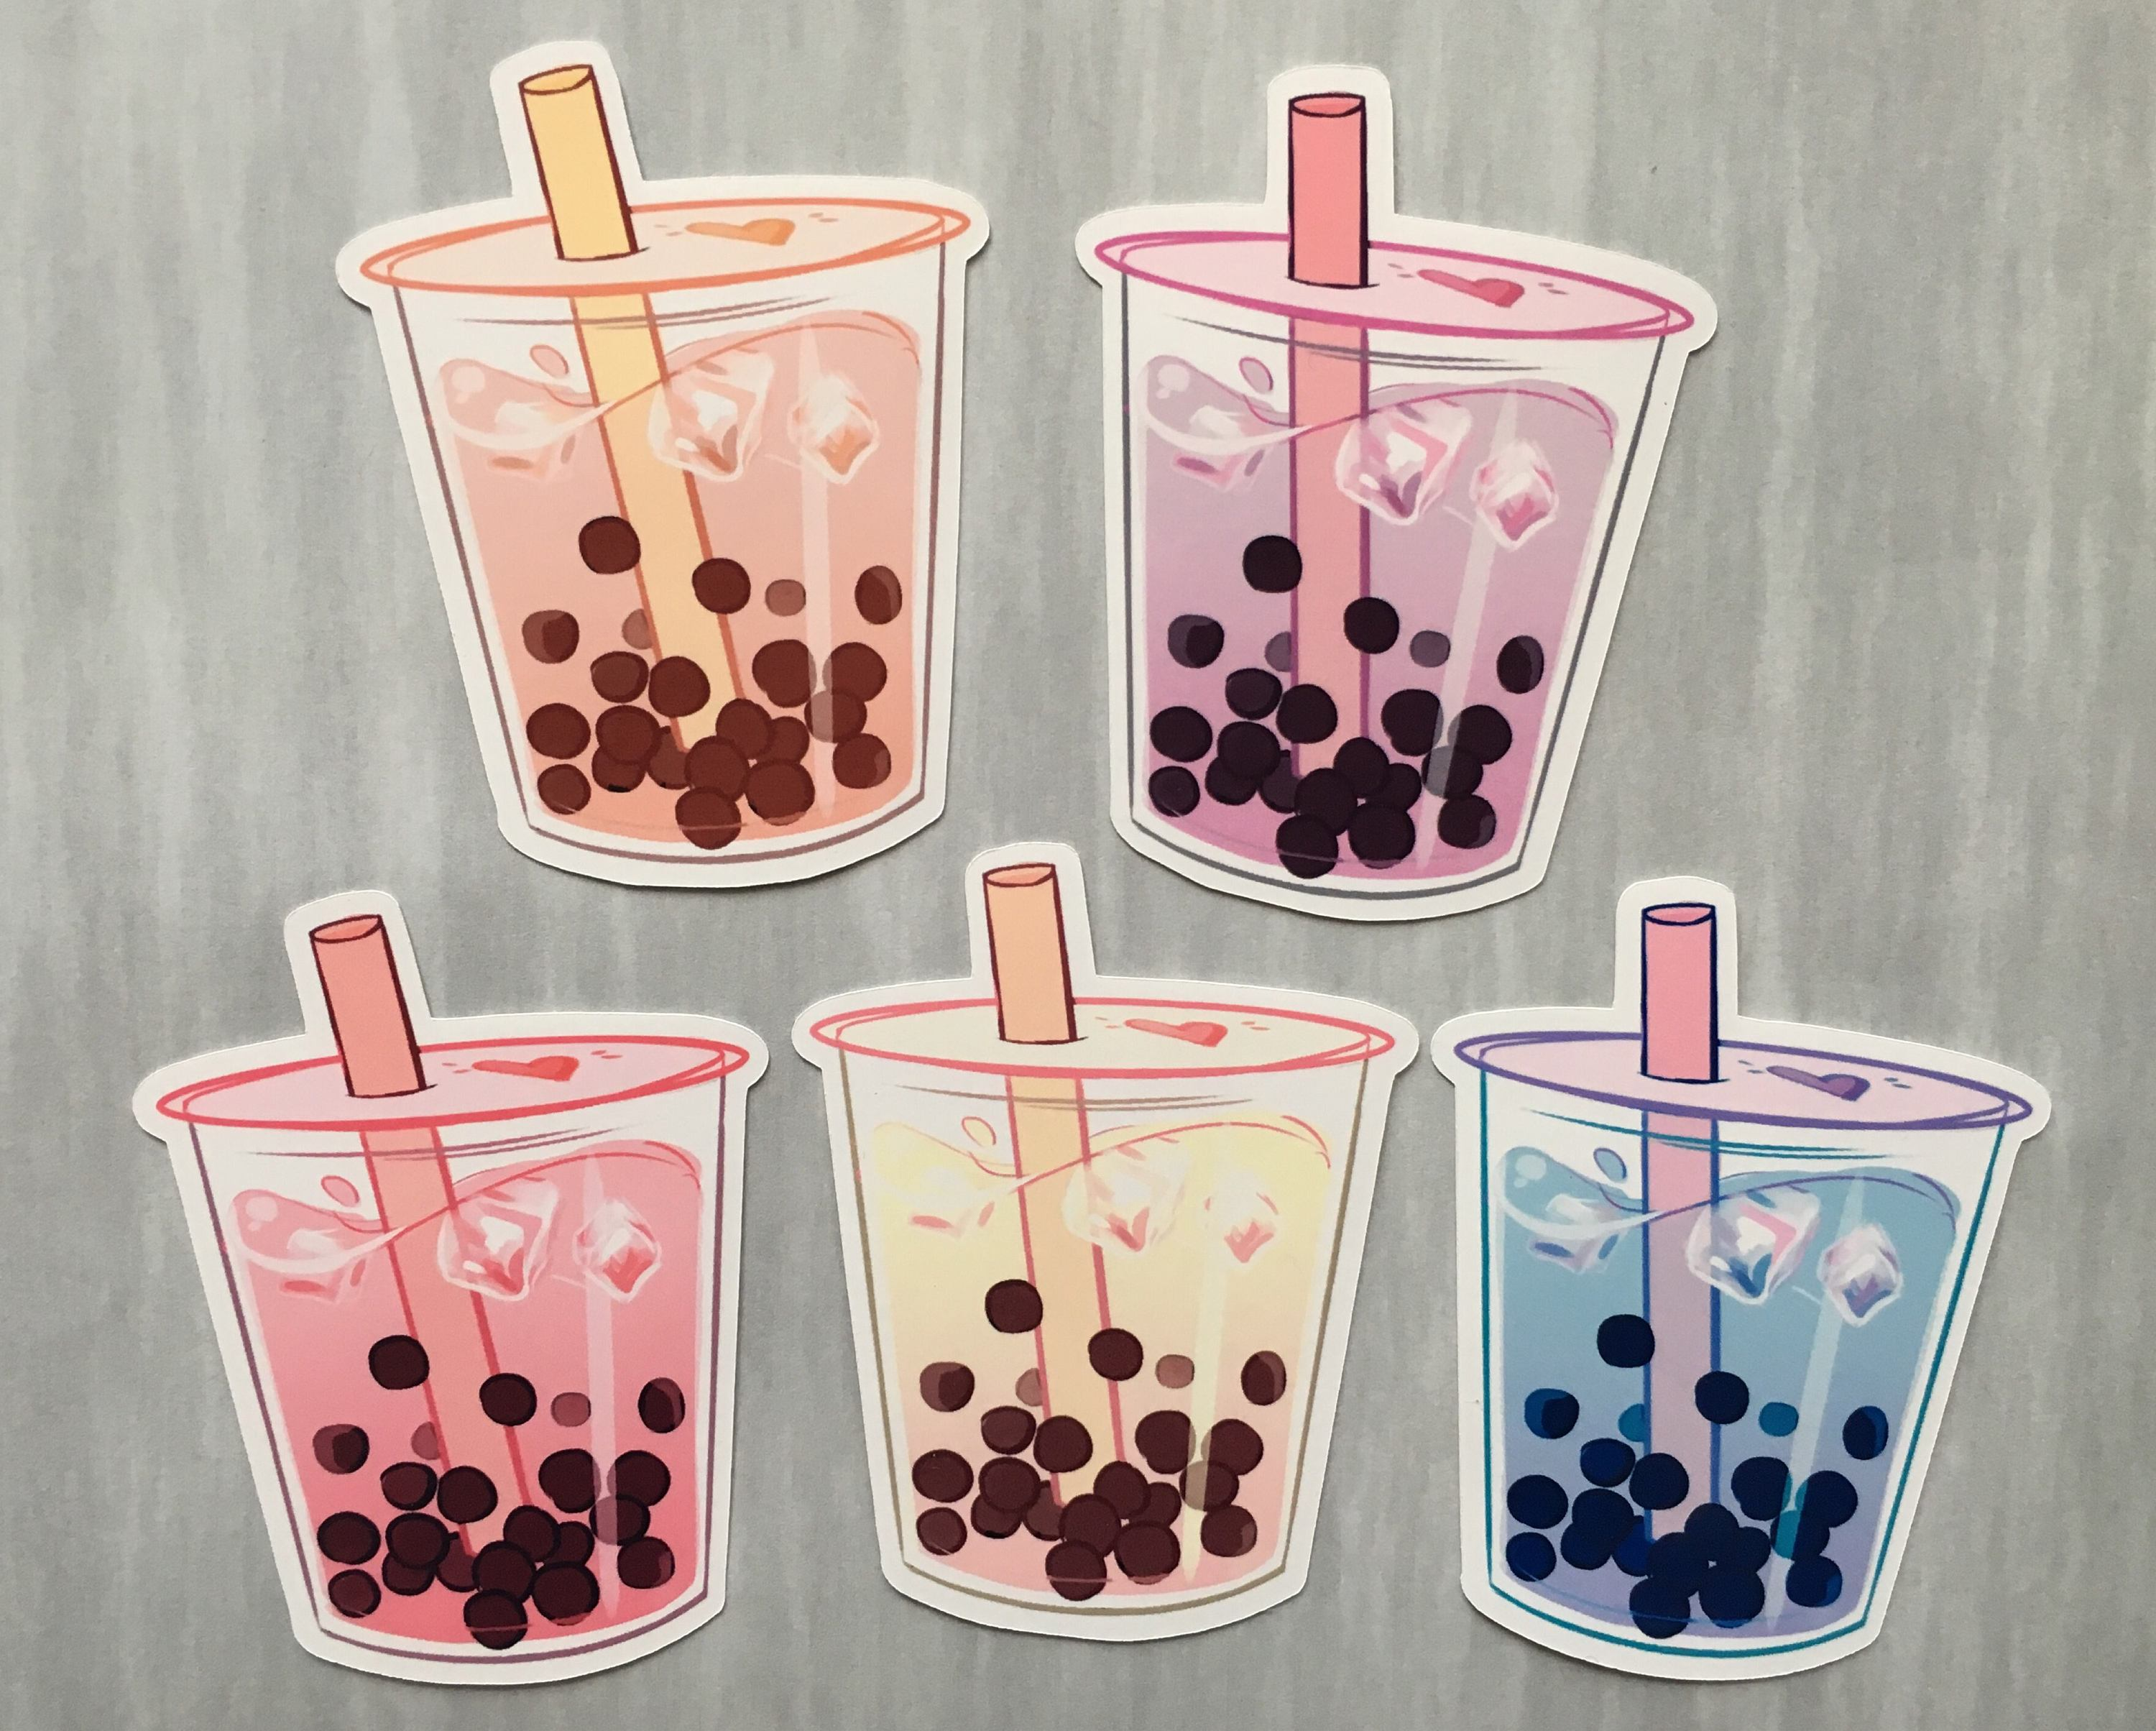 It's just a graphic of Lucrative Boba Tea Drawing